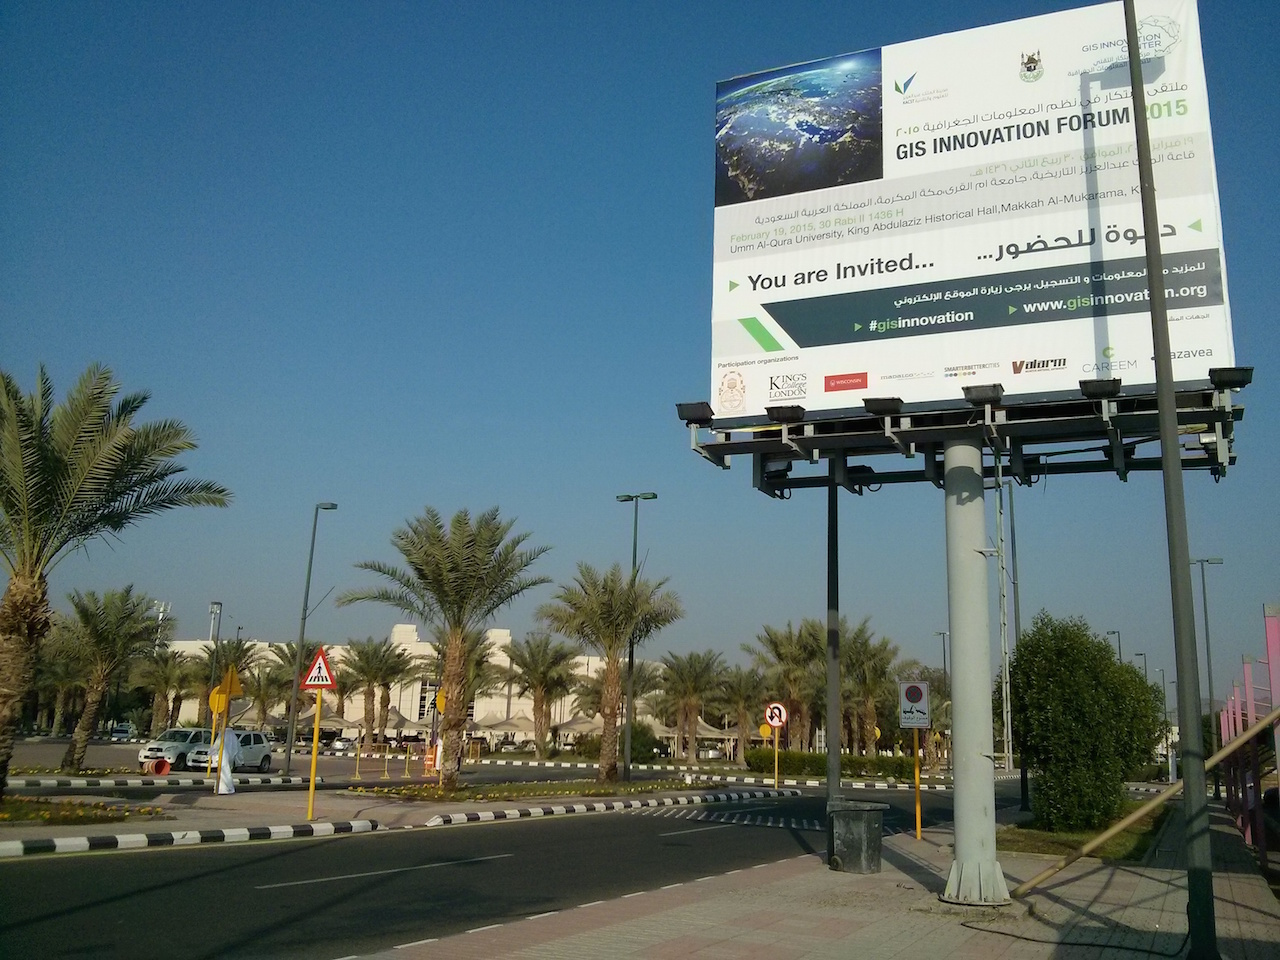 valarm-remote-environmental-monitoring-telemetry-outdoor-billboard-gis-innovation-forum-conference-2015-makkah-saudi-arabia-middle-east